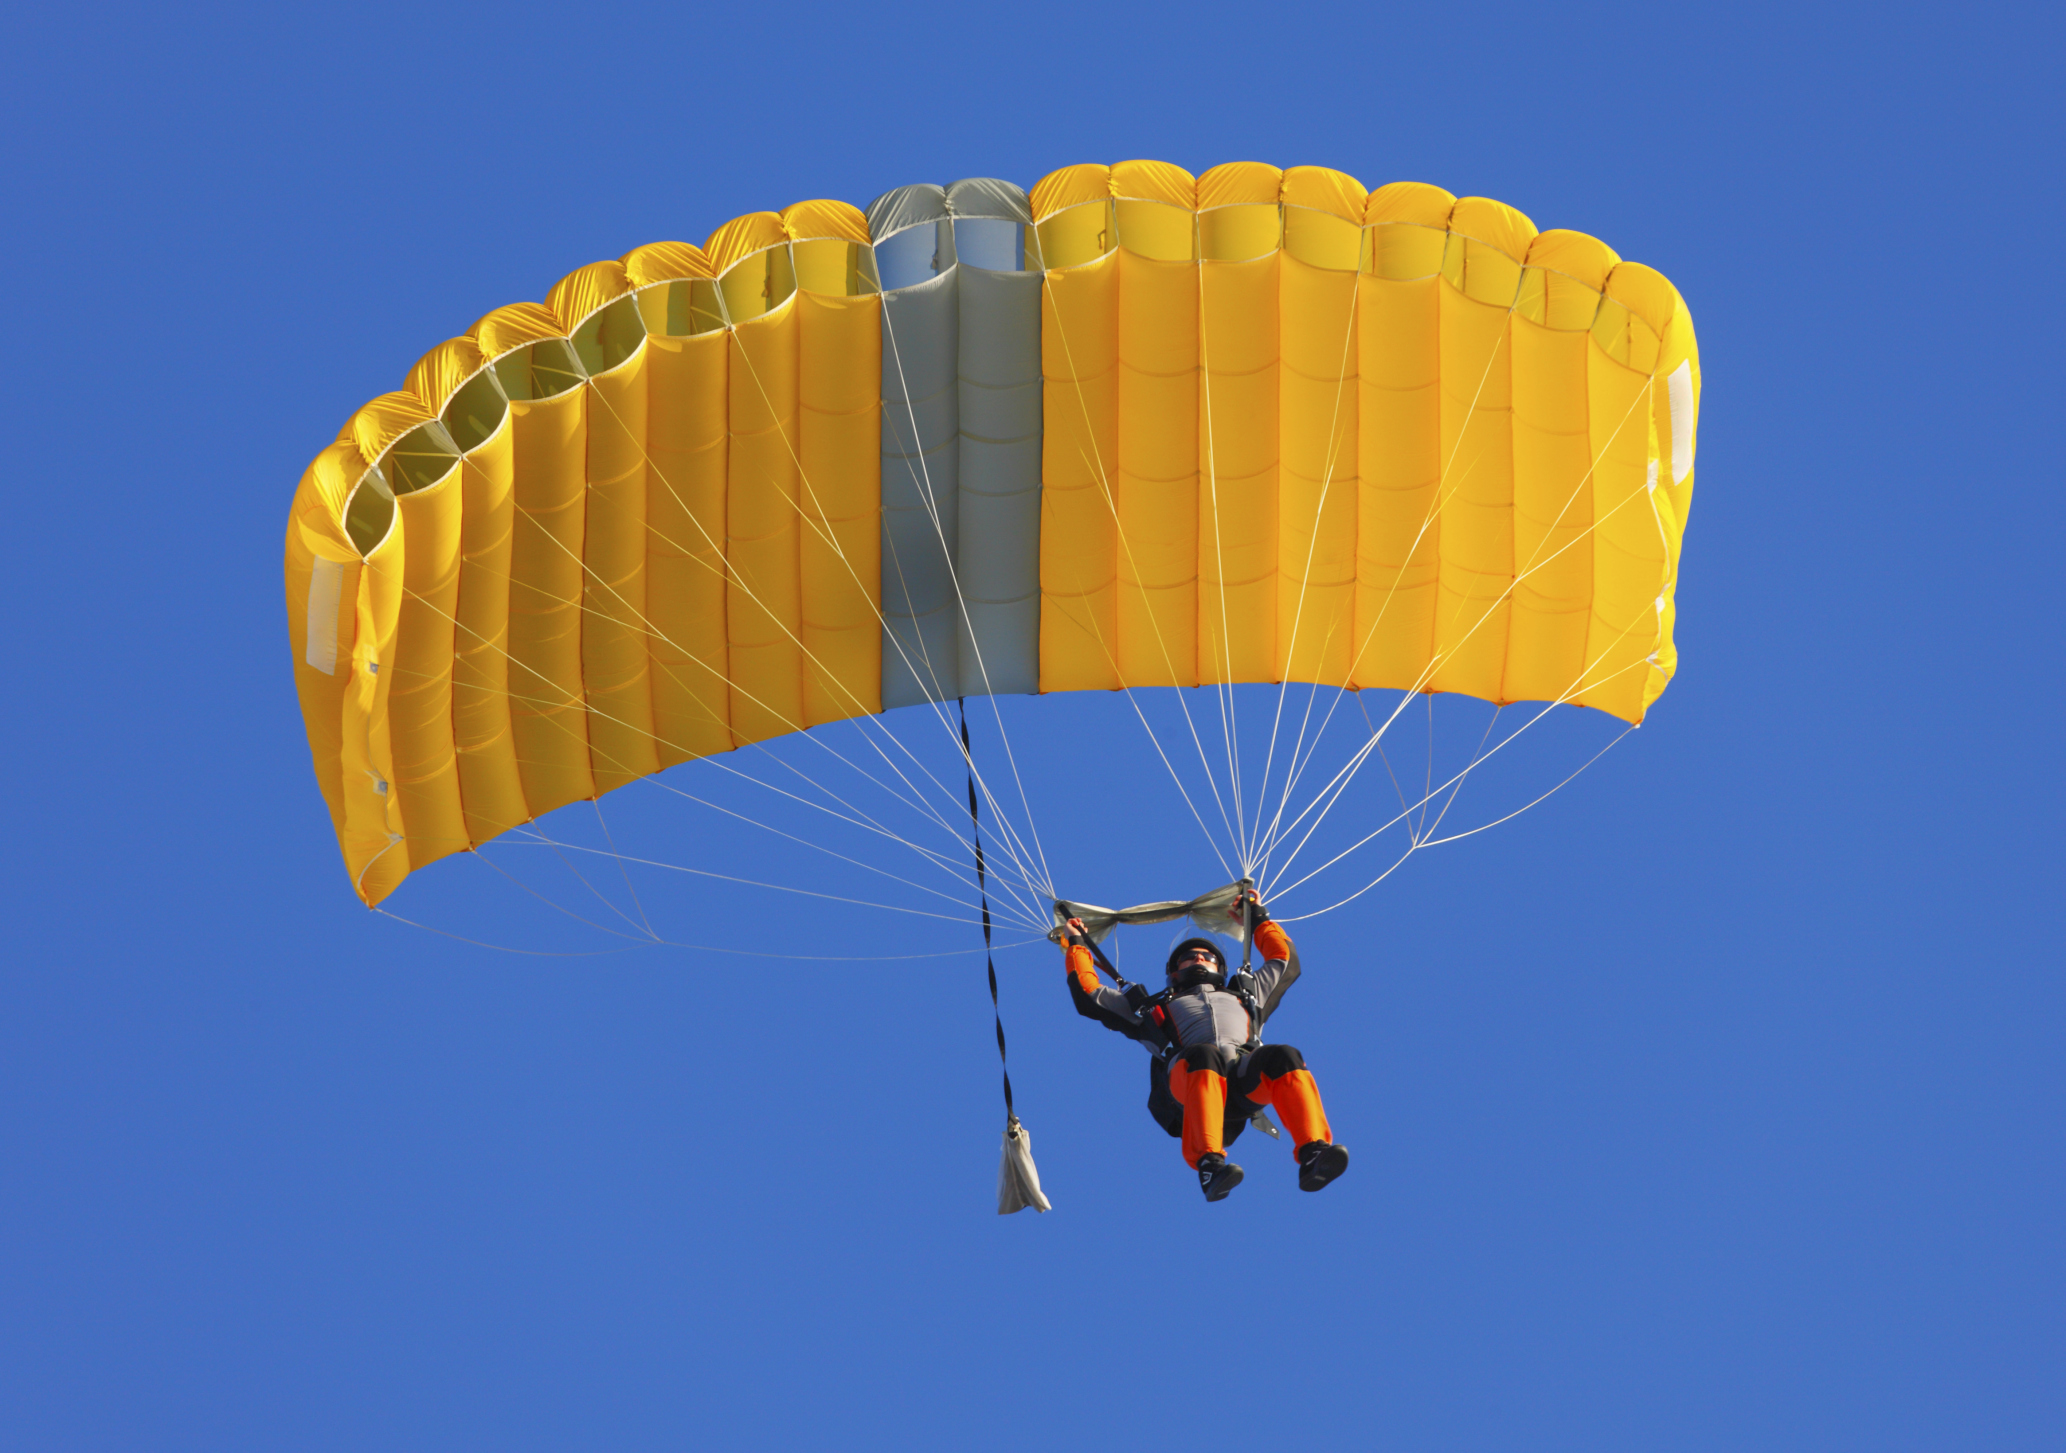 How Does a Parachute Work? | Sciencing